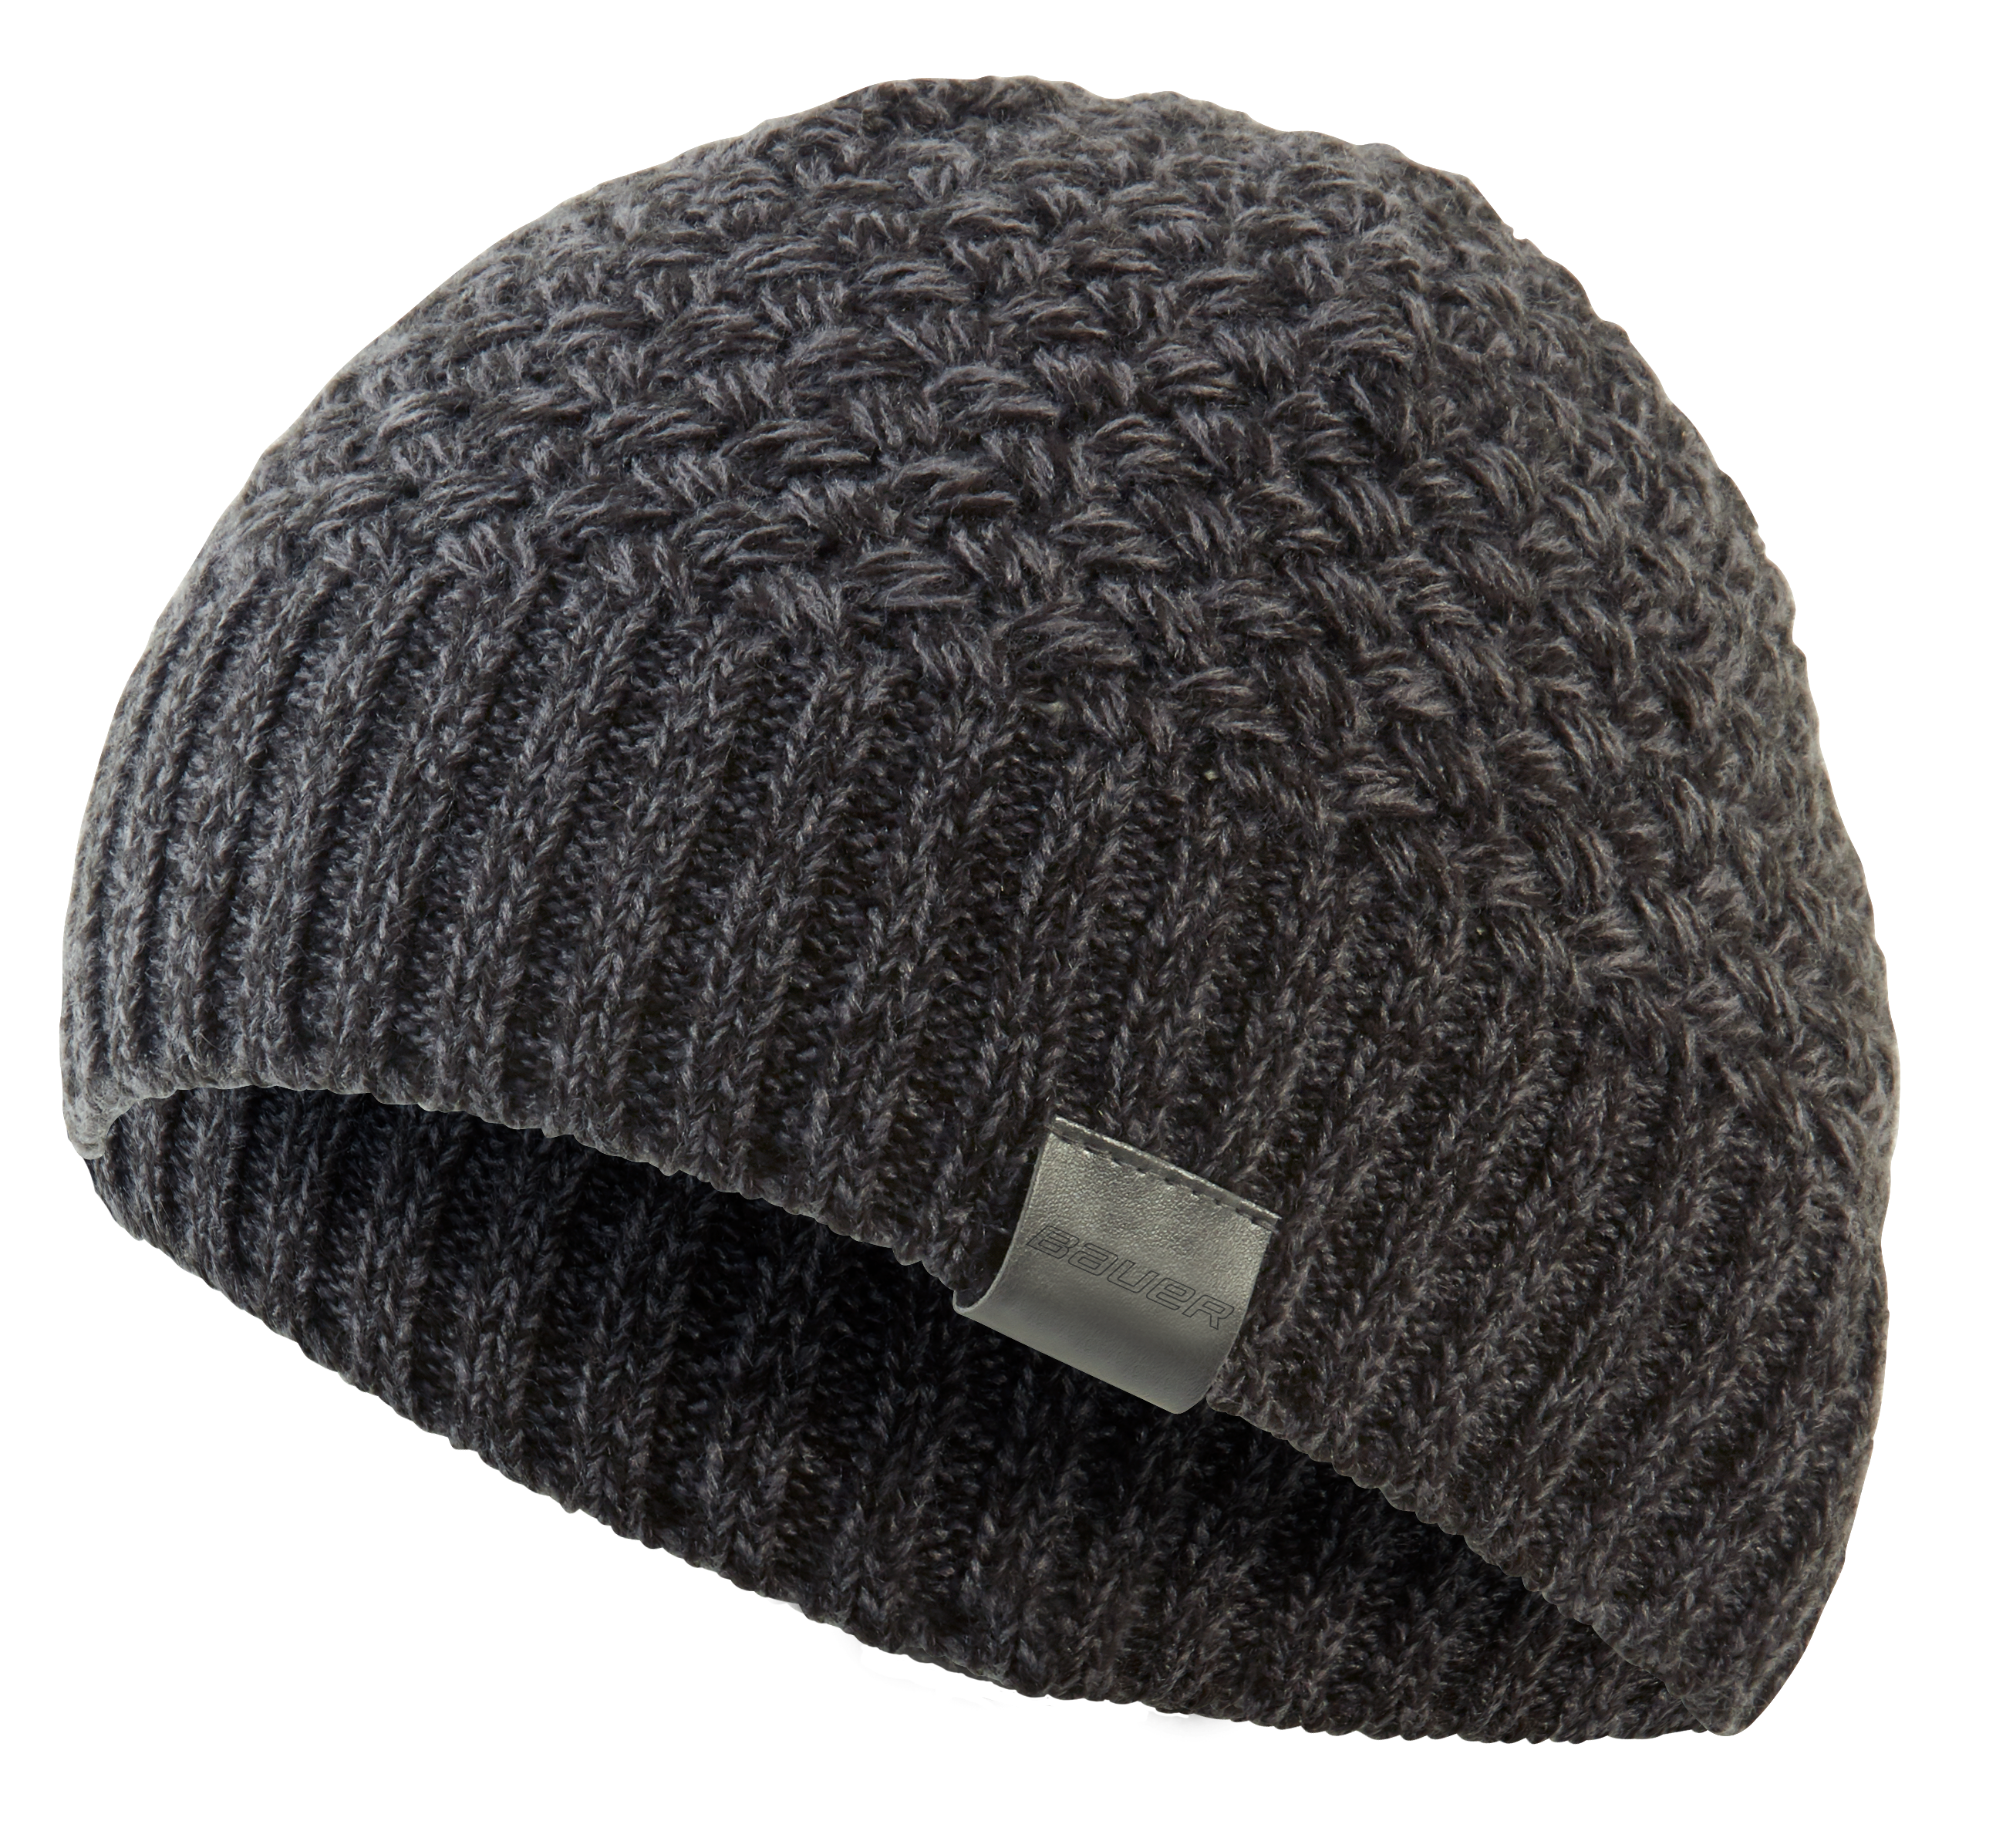 New Era® Zig Zag Knit Beanie - Women's,,moyen